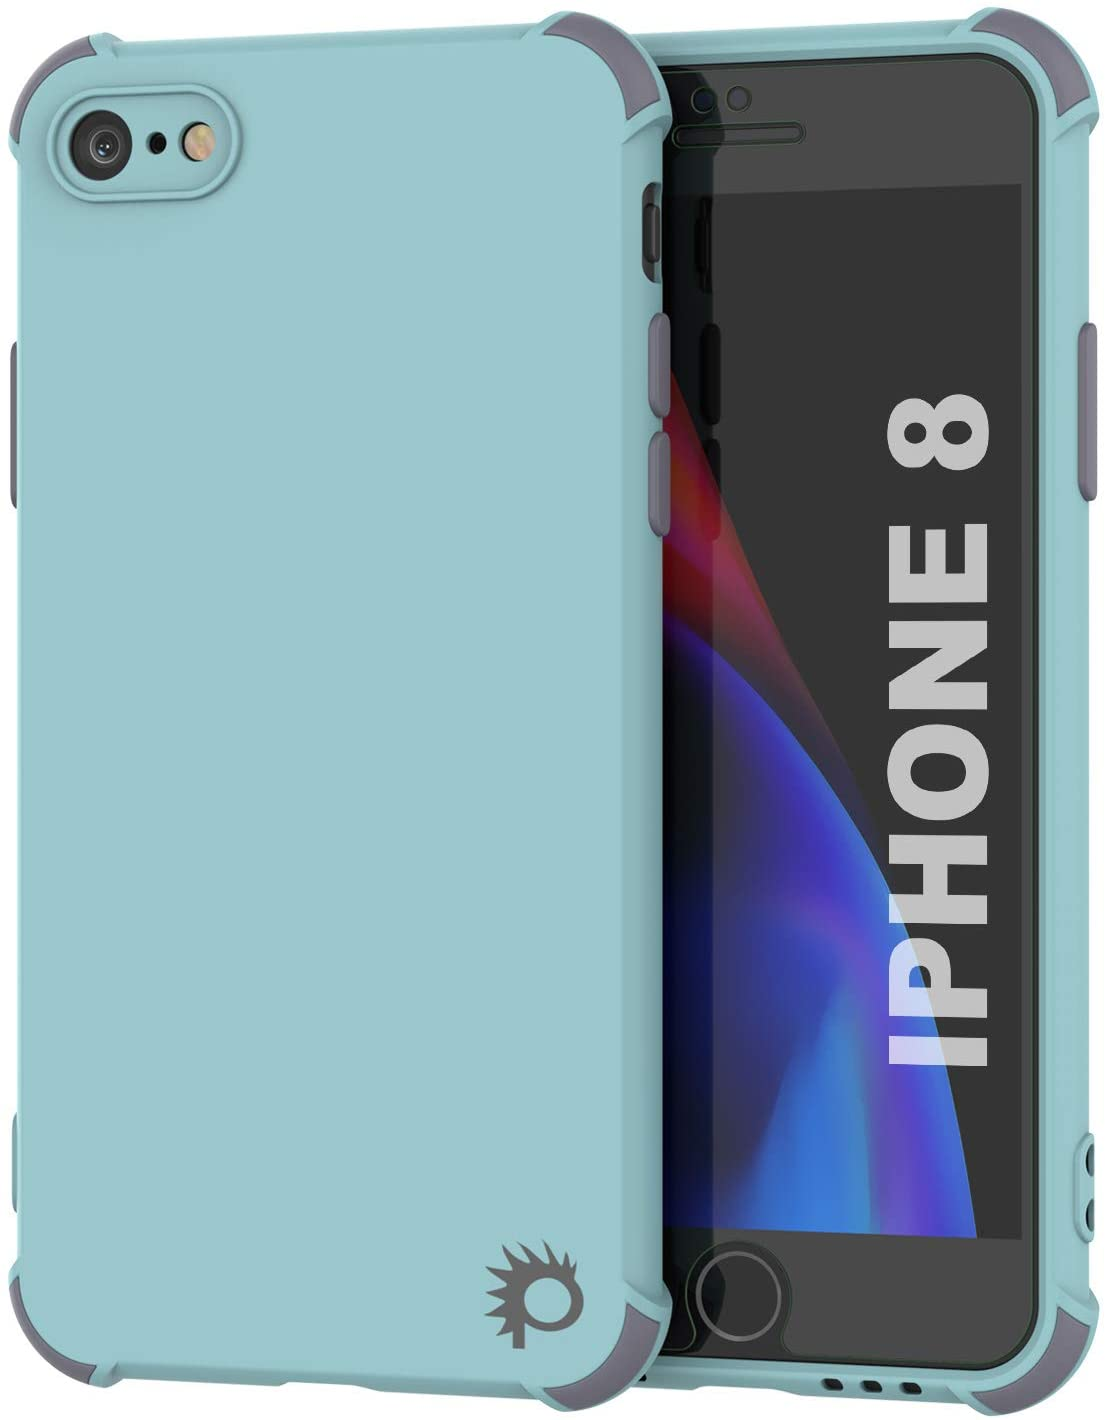 Punkcase Protective & Lightweight TPU Case [Sunshine Series] for iPhone 8 [Teal]